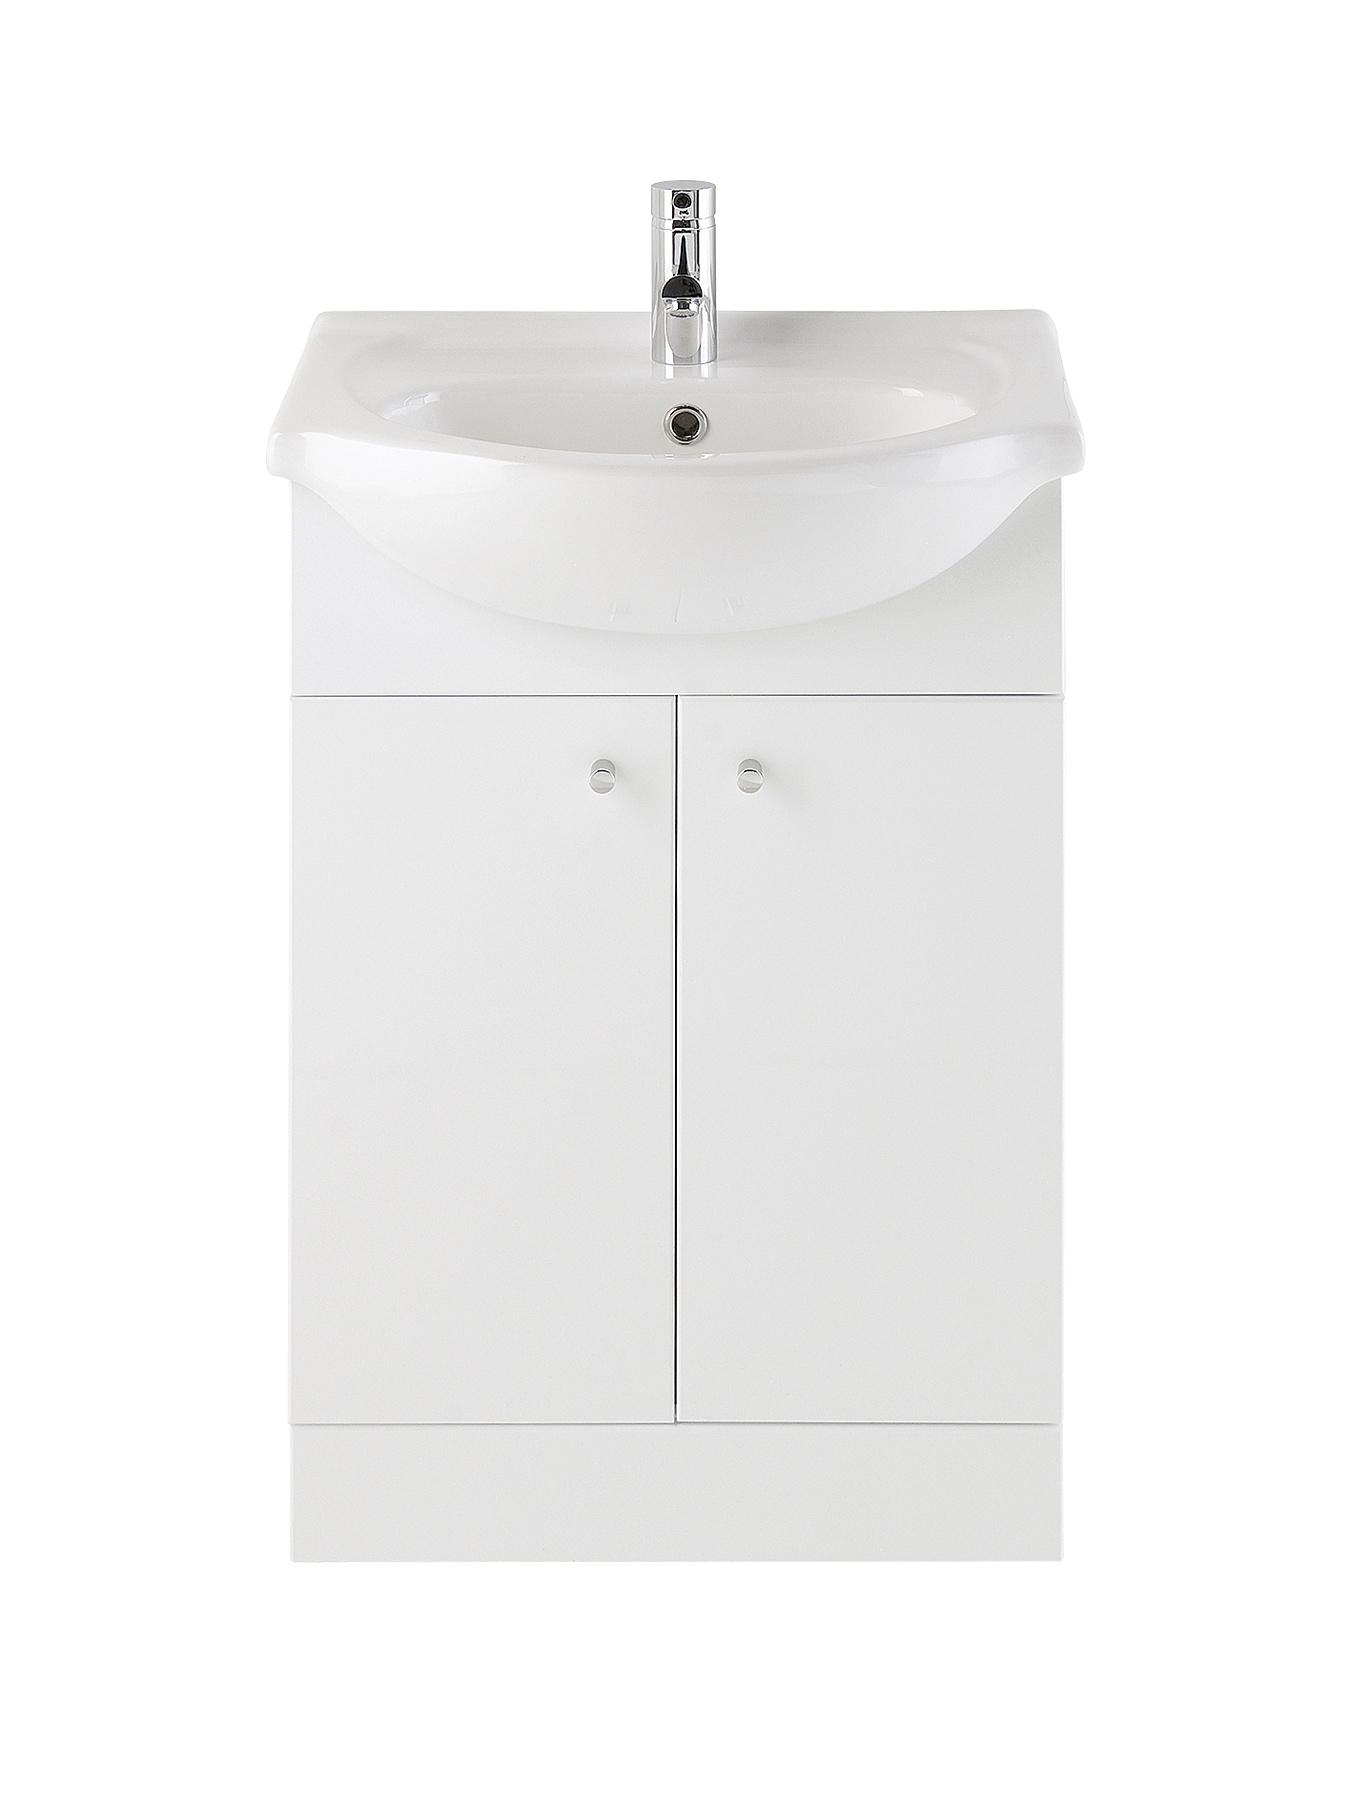 550mm Basin and Vanity Unit - Gloss White